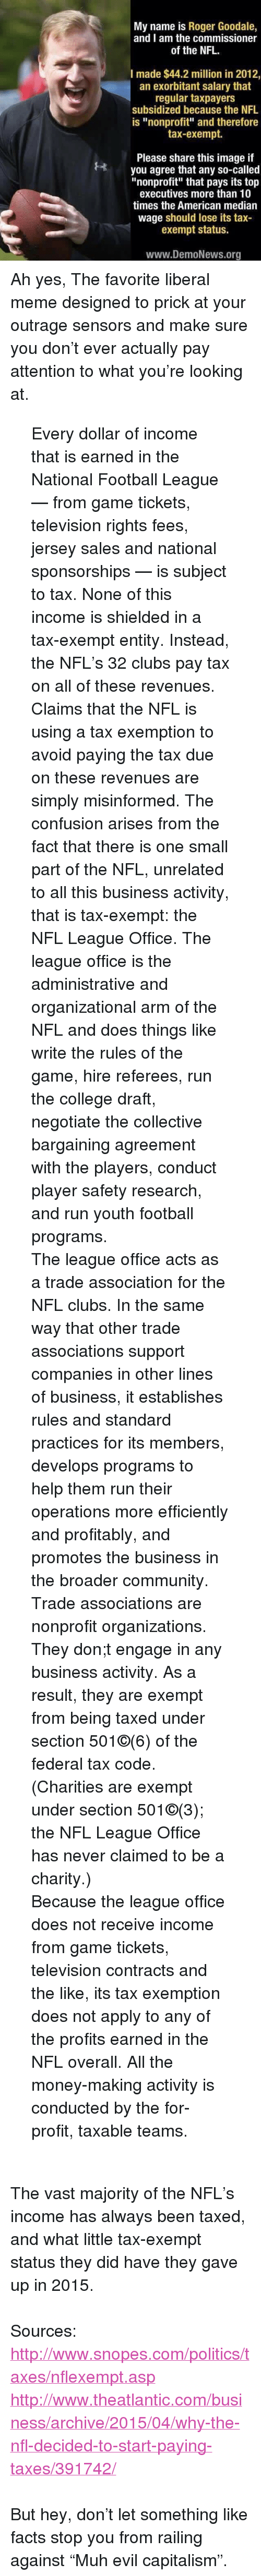 """median: My name is Roger Goodale,  and I am the commissioner  of the NFL  I made $44.2 million in 2012,  an exorbitant salary that  regular taxpayers  subsidized because the NFL  is """"nonprofit"""" and therefore  tax-exempt.  Please share this image if  you agree that any so-called  """"nonprofit"""" that pays its top  executives more than 10  times the American median  wage should lose its tax-  exempt status.  www.DemoNews.org <p>Ah yes, The favorite liberal meme designed to prick at your outrage sensors and make sure you don't ever actually pay attention to what you're looking at.</p>  <blockquote>Every dollar of income that is earned in the National Football League — from game tickets, television rights fees, jersey sales and national sponsorships — is subject to tax. None of this income is shielded in a tax-exempt entity. Instead, the NFL's 32 clubs pay tax on all of these revenues.   <p>Claims that the NFL is using a tax exemption to avoid paying the tax due on these revenues are simply misinformed. The confusion arises from the fact that there is one small part of the NFL, unrelated to all this business activity, that is tax-exempt: the NFL League Office. The league office is the administrative and organizational arm of the NFL and does things like write the rules of the game, hire referees, run the college draft, negotiate the collective bargaining agreement with the players, conduct player safety research, and run youth football programs. </p>  <p>The league office acts as a trade association for the NFL clubs. In the same way that other trade associations support companies in other lines of business, it establishes rules and standard practices for its members, develops programs to help them run their operations more efficiently and profitably, and promotes the business in the broader community. Trade associations are nonprofit organizations. They don;t engage in any business activity. As a result, they are exempt from being taxed under section 501©(6) of the federal"""